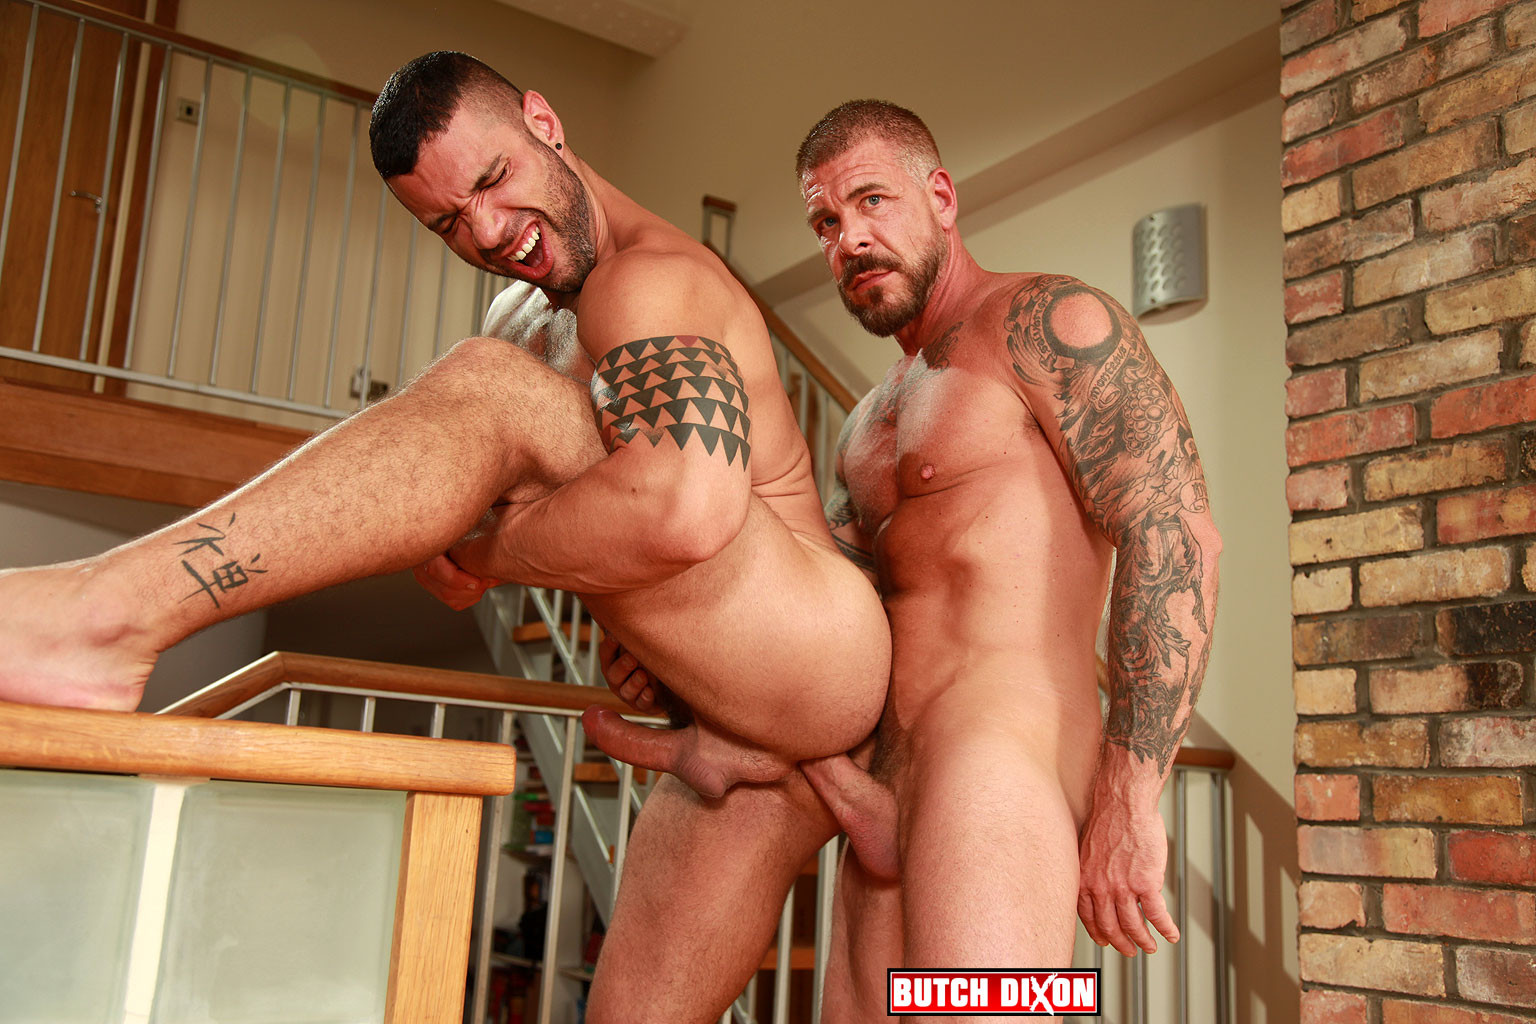 Rocco Steele bareback fuck Letterio Amadeo gay hot daddy dude men porn